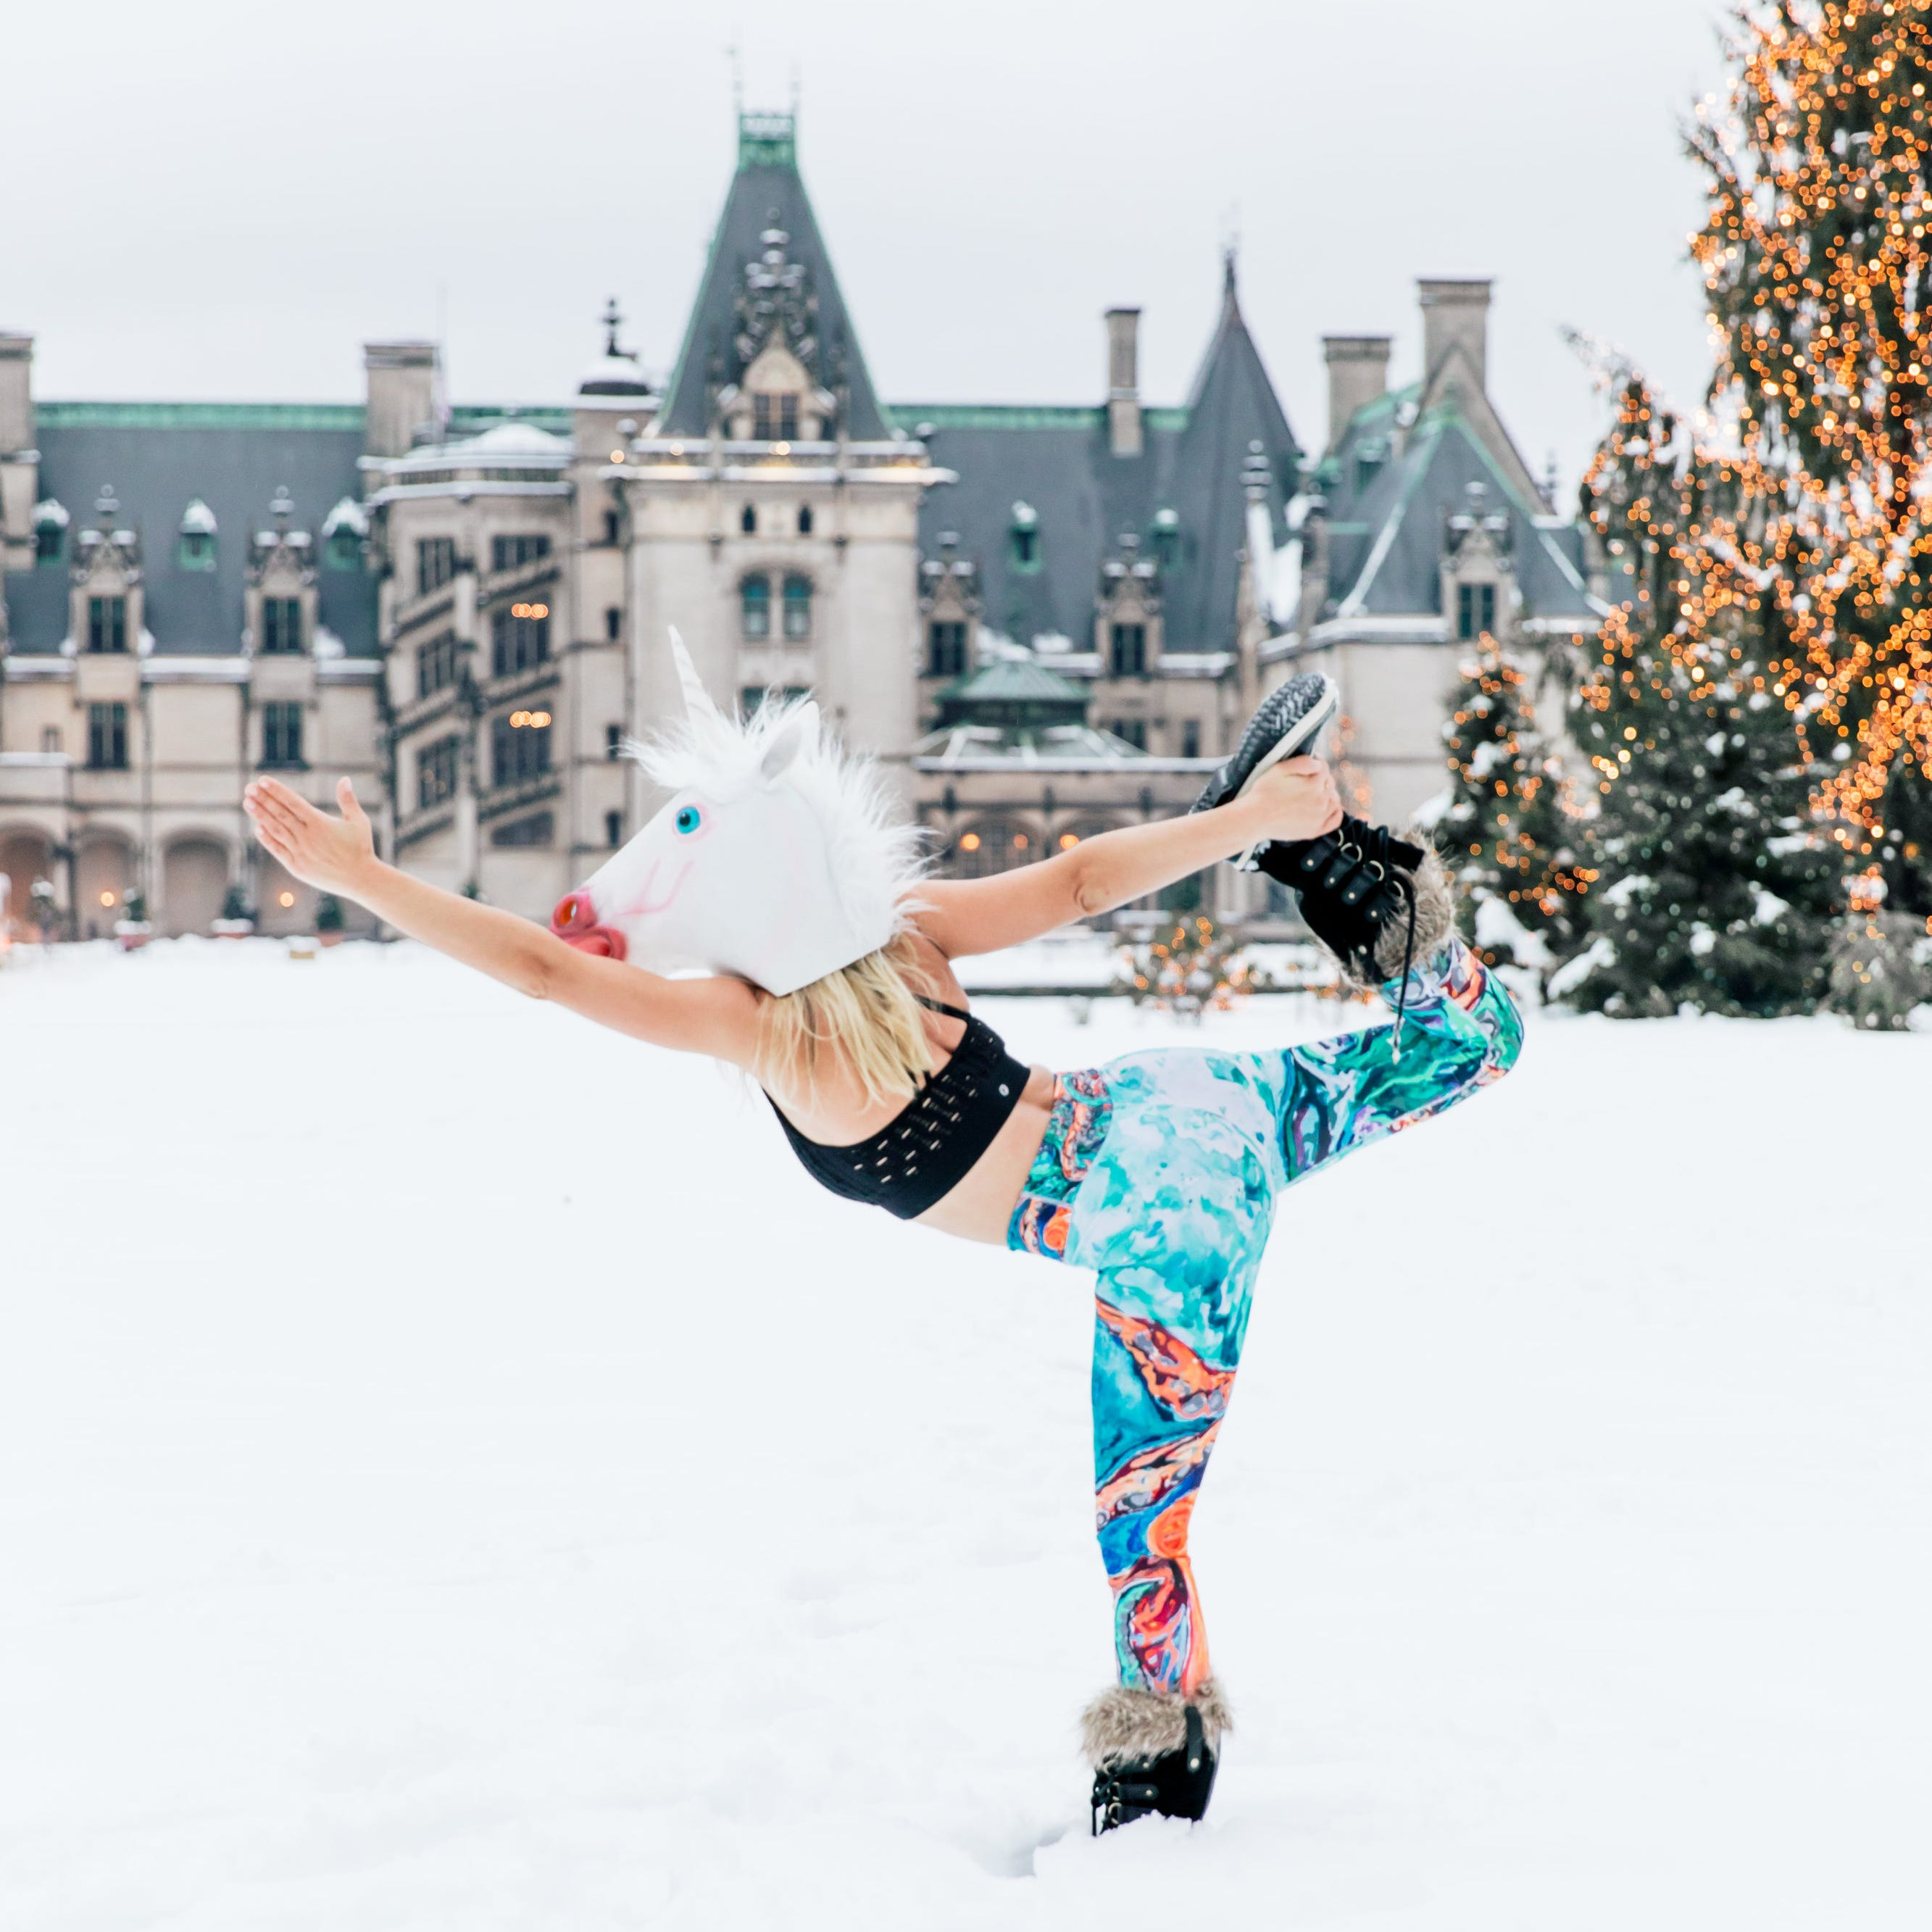 Unicorn yogi strikes a pose in the snow at Biltmore